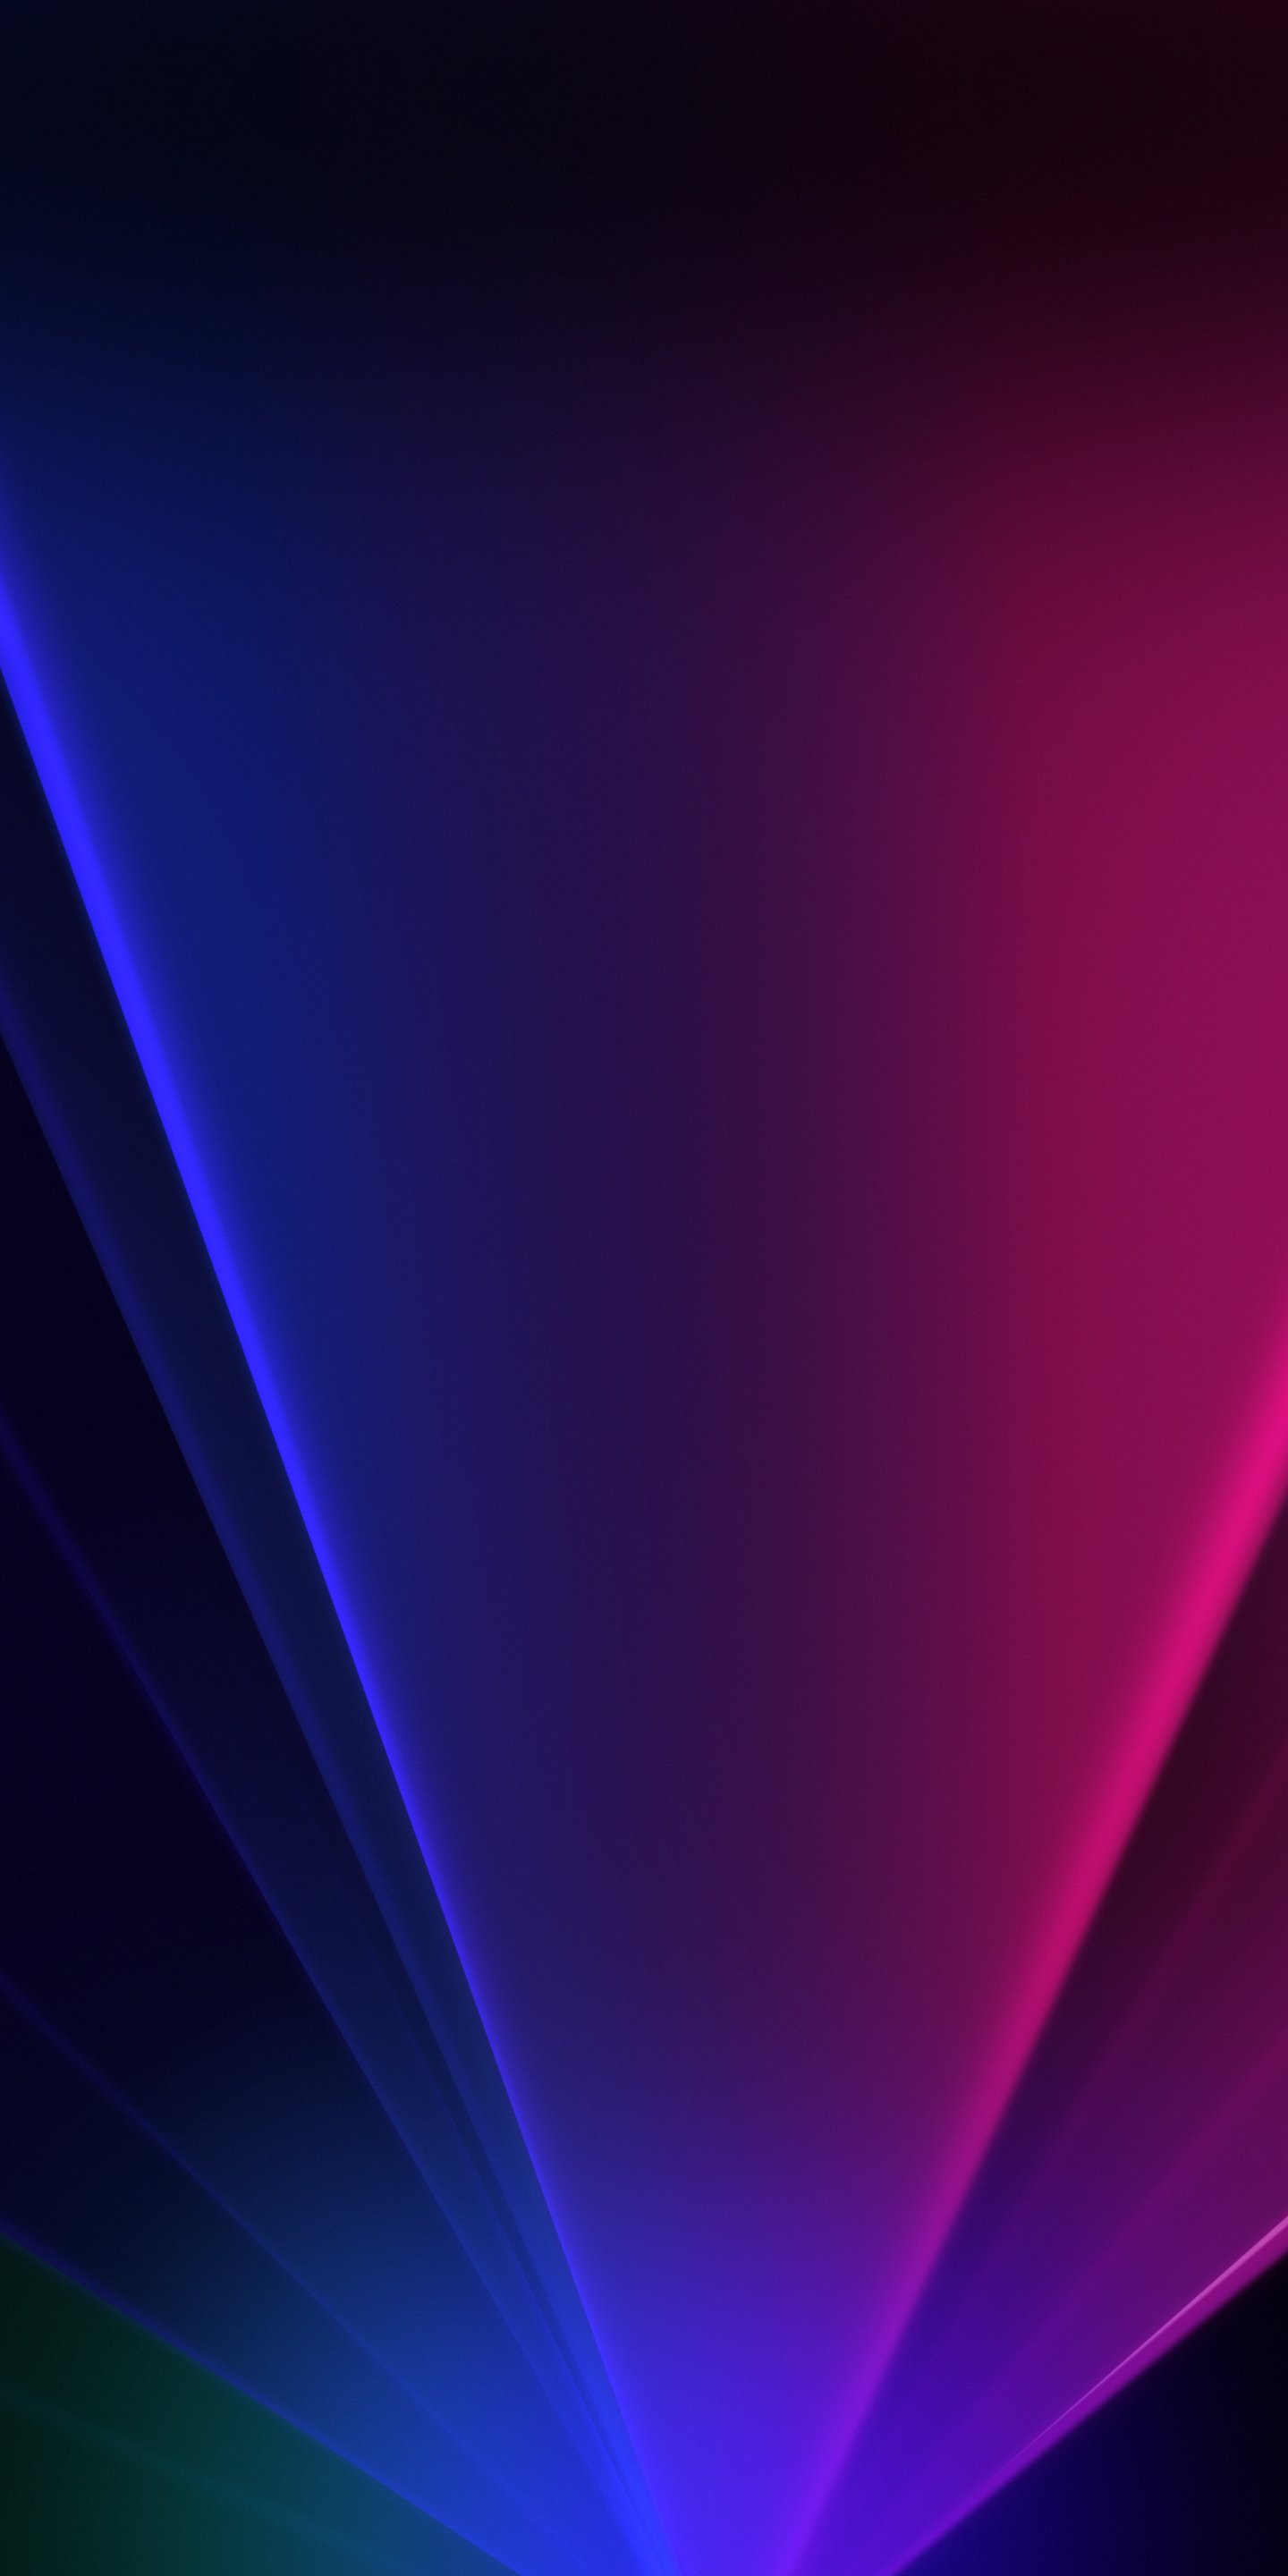 Wallpaper 3d Android Get A Taste Of The Lg V30 On Your Device With These